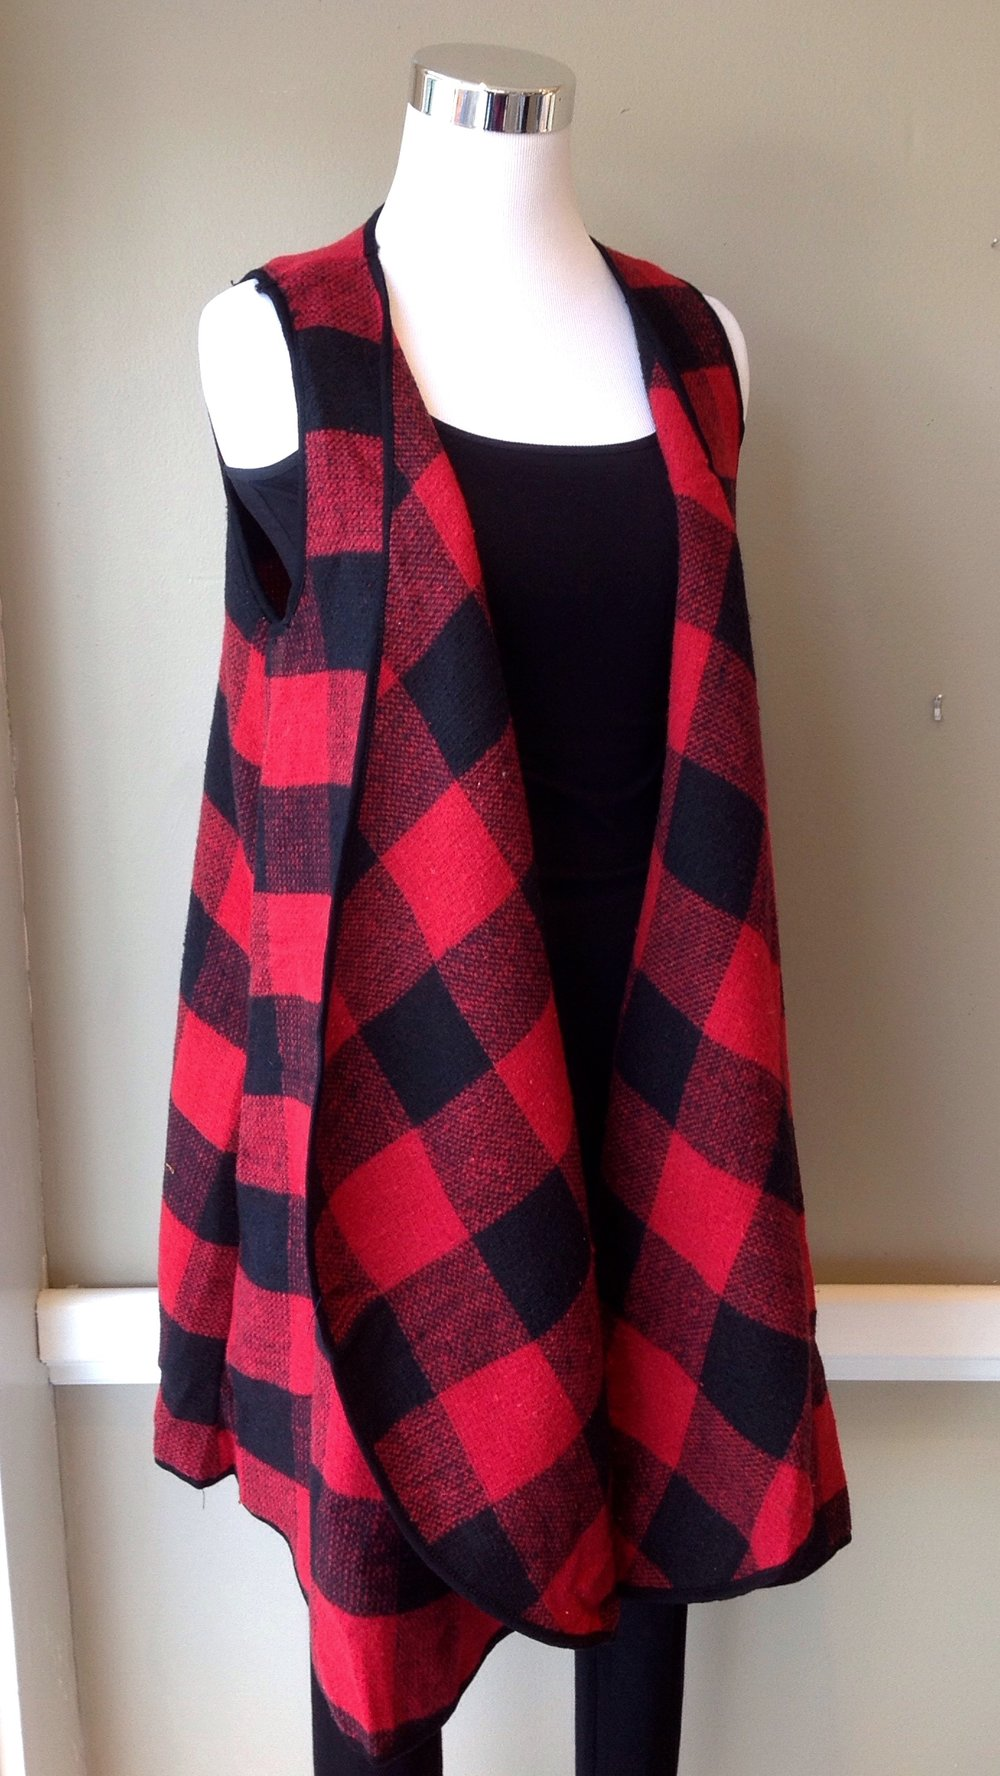 Red and black buffalo check vest with rounded hem and side seam pockets, $38